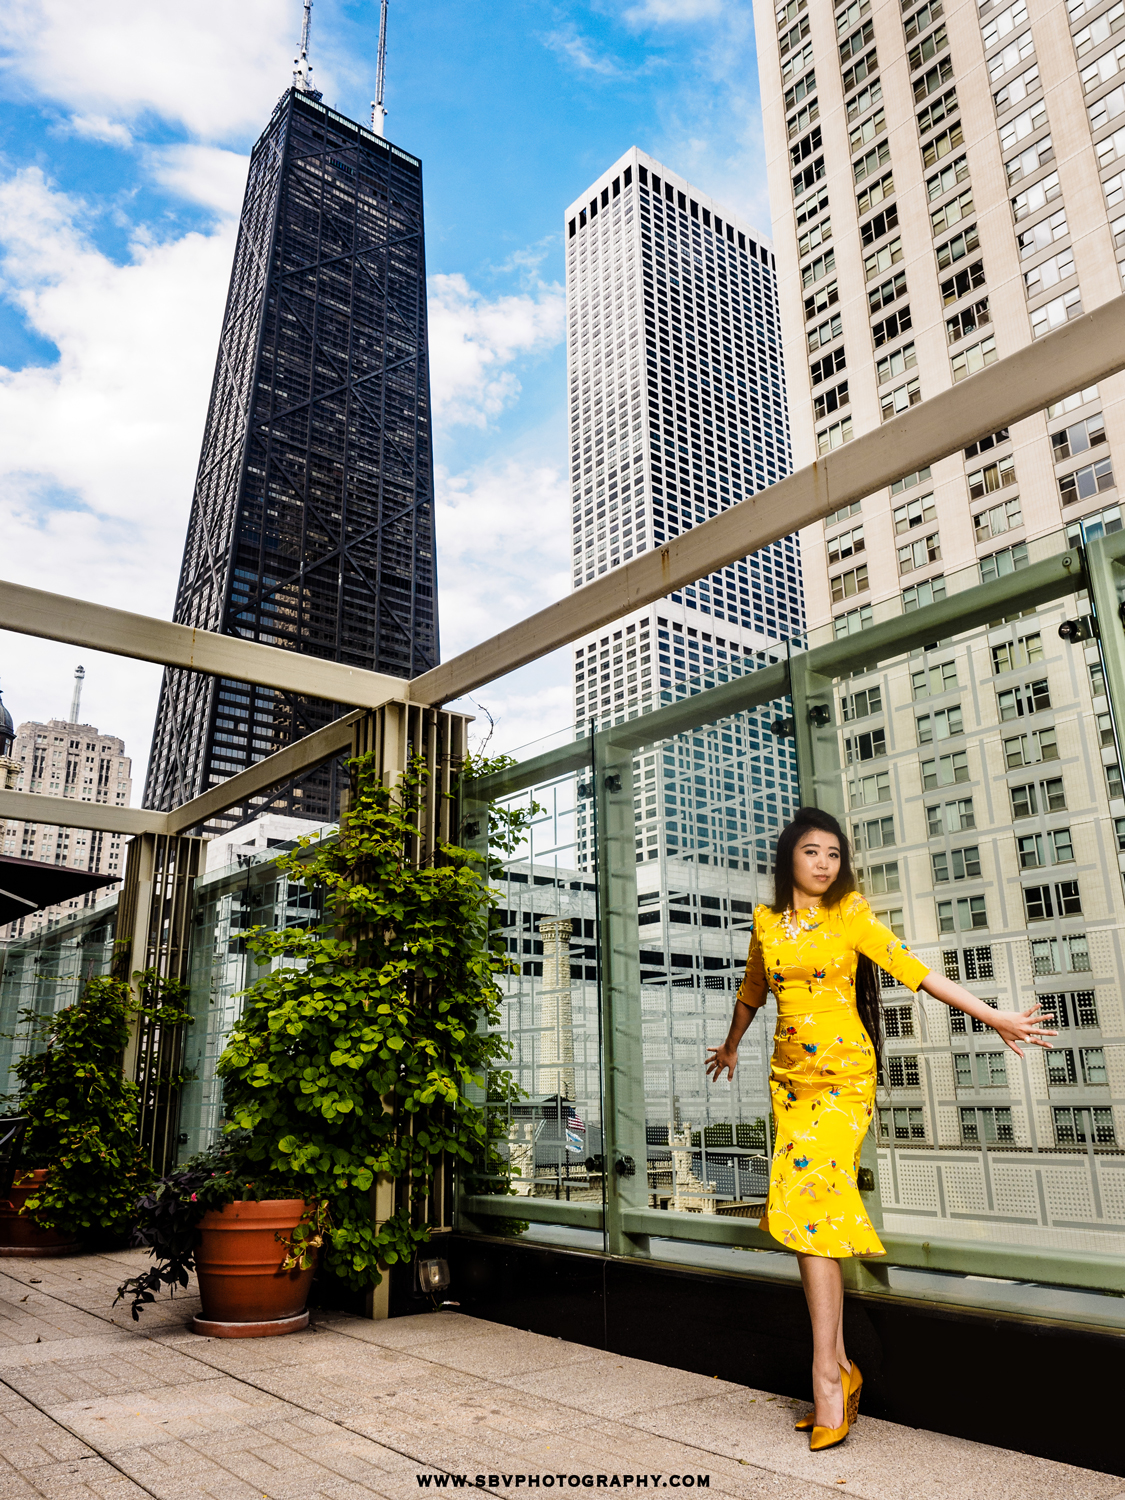 Portrait overlooking the city of Chicago from the terrace of The Peninsula Hotel.